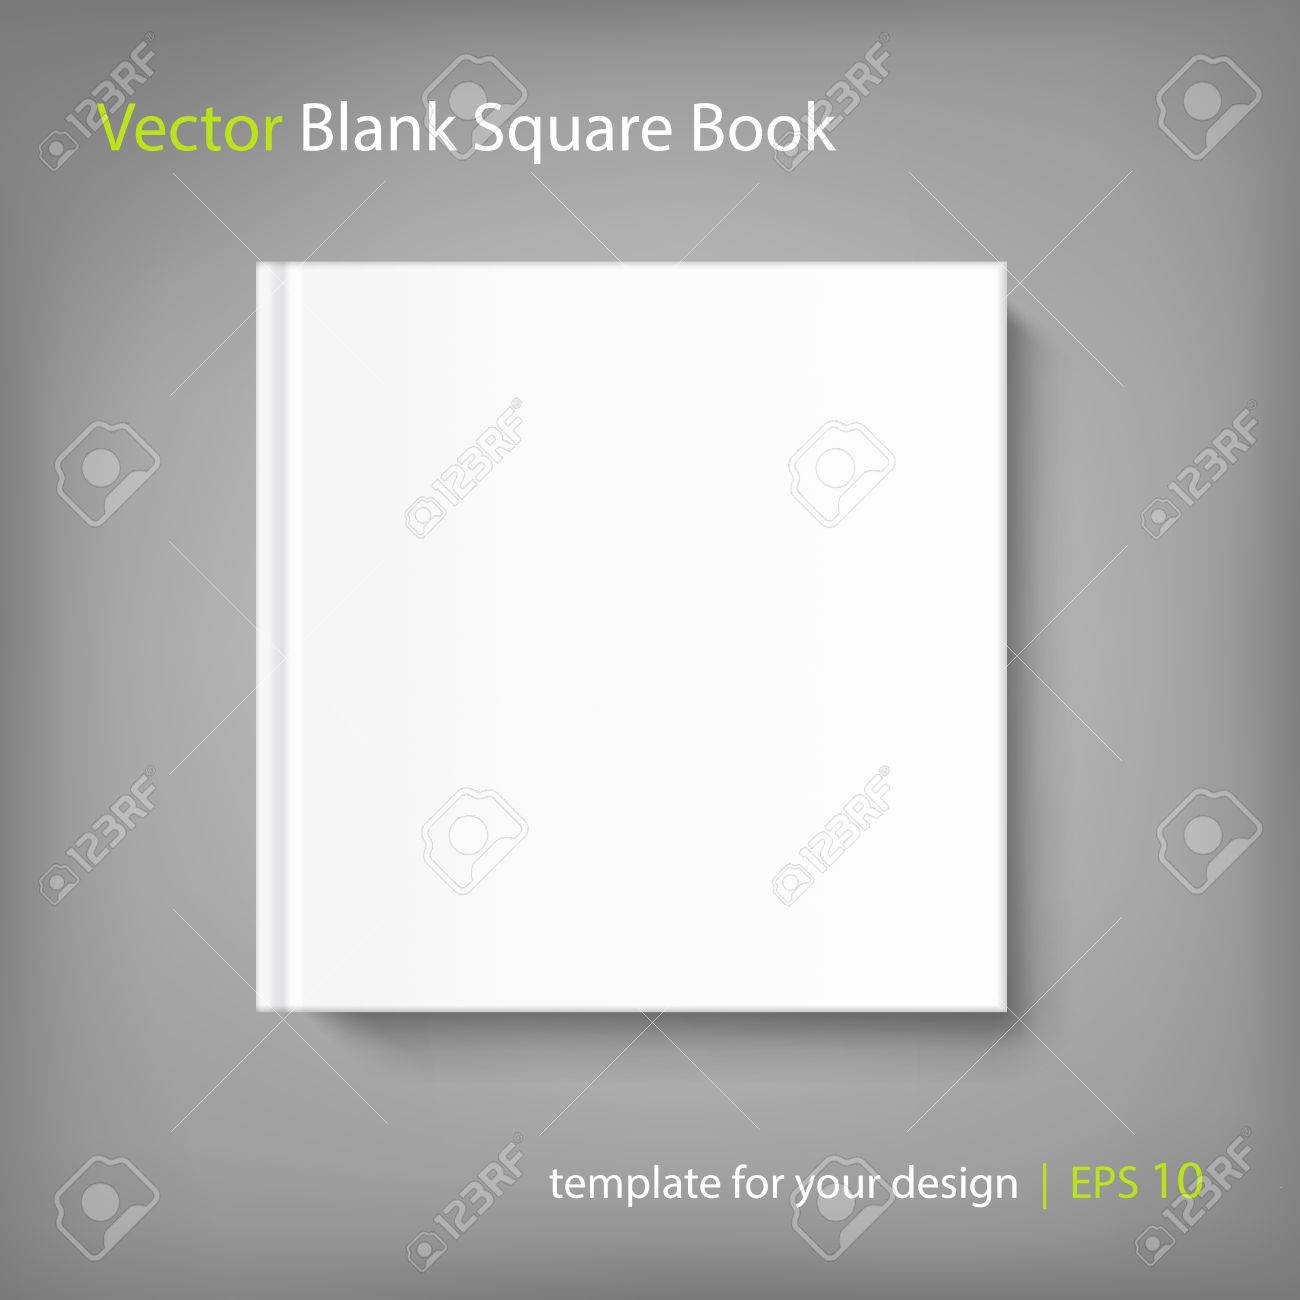 Mock up square cover book on grey background. Vector template for your design. - 64500277